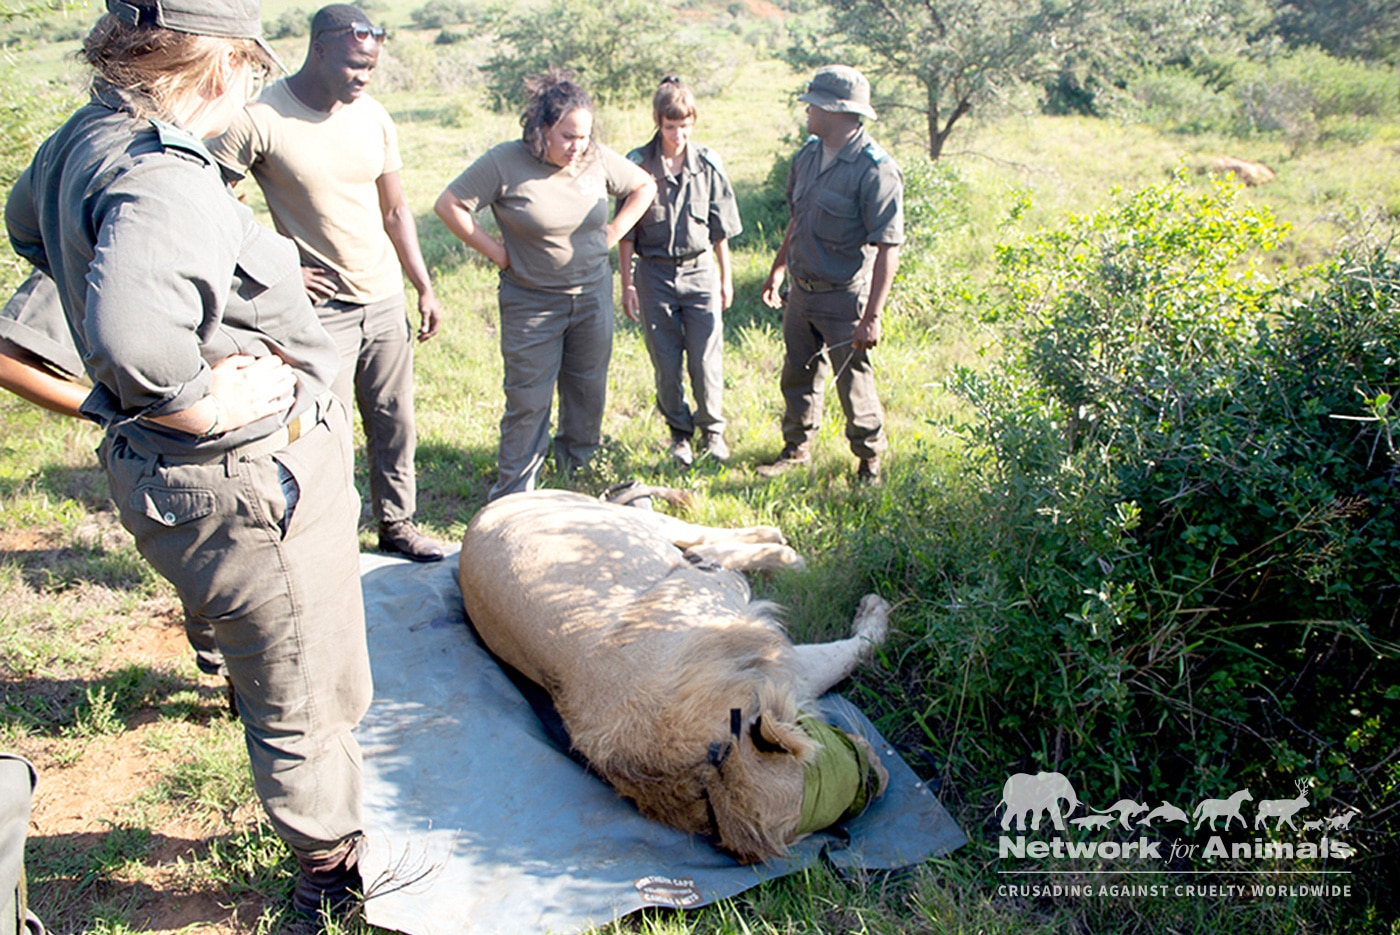 Lion numbers PLUMMET from 200,000 to 20,000! 1